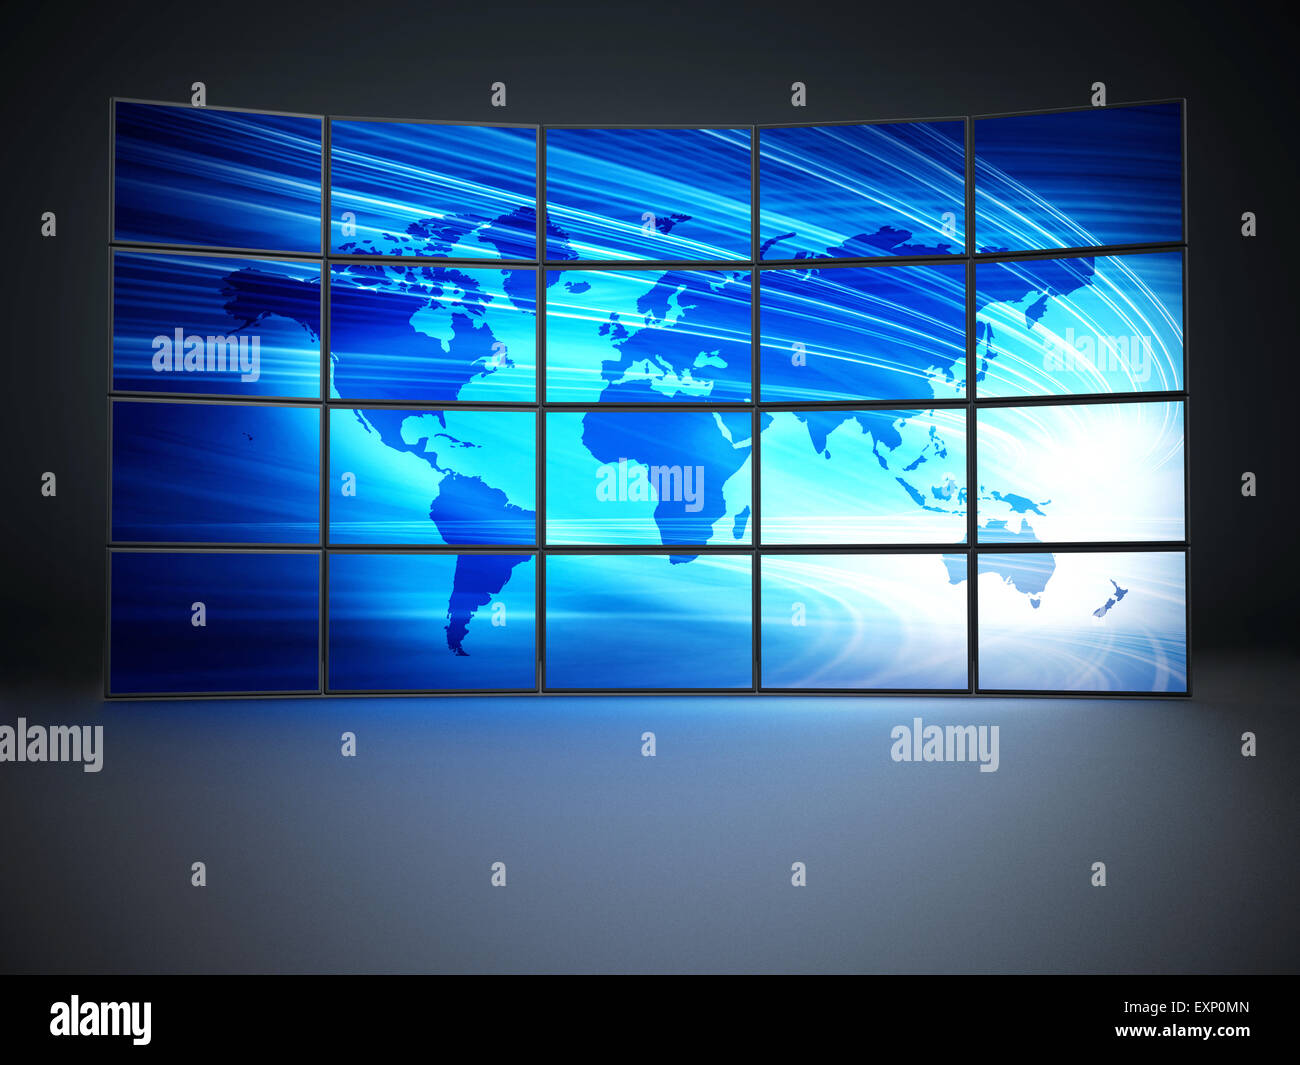 Screens with a blue world map forming video wall - Stock Image